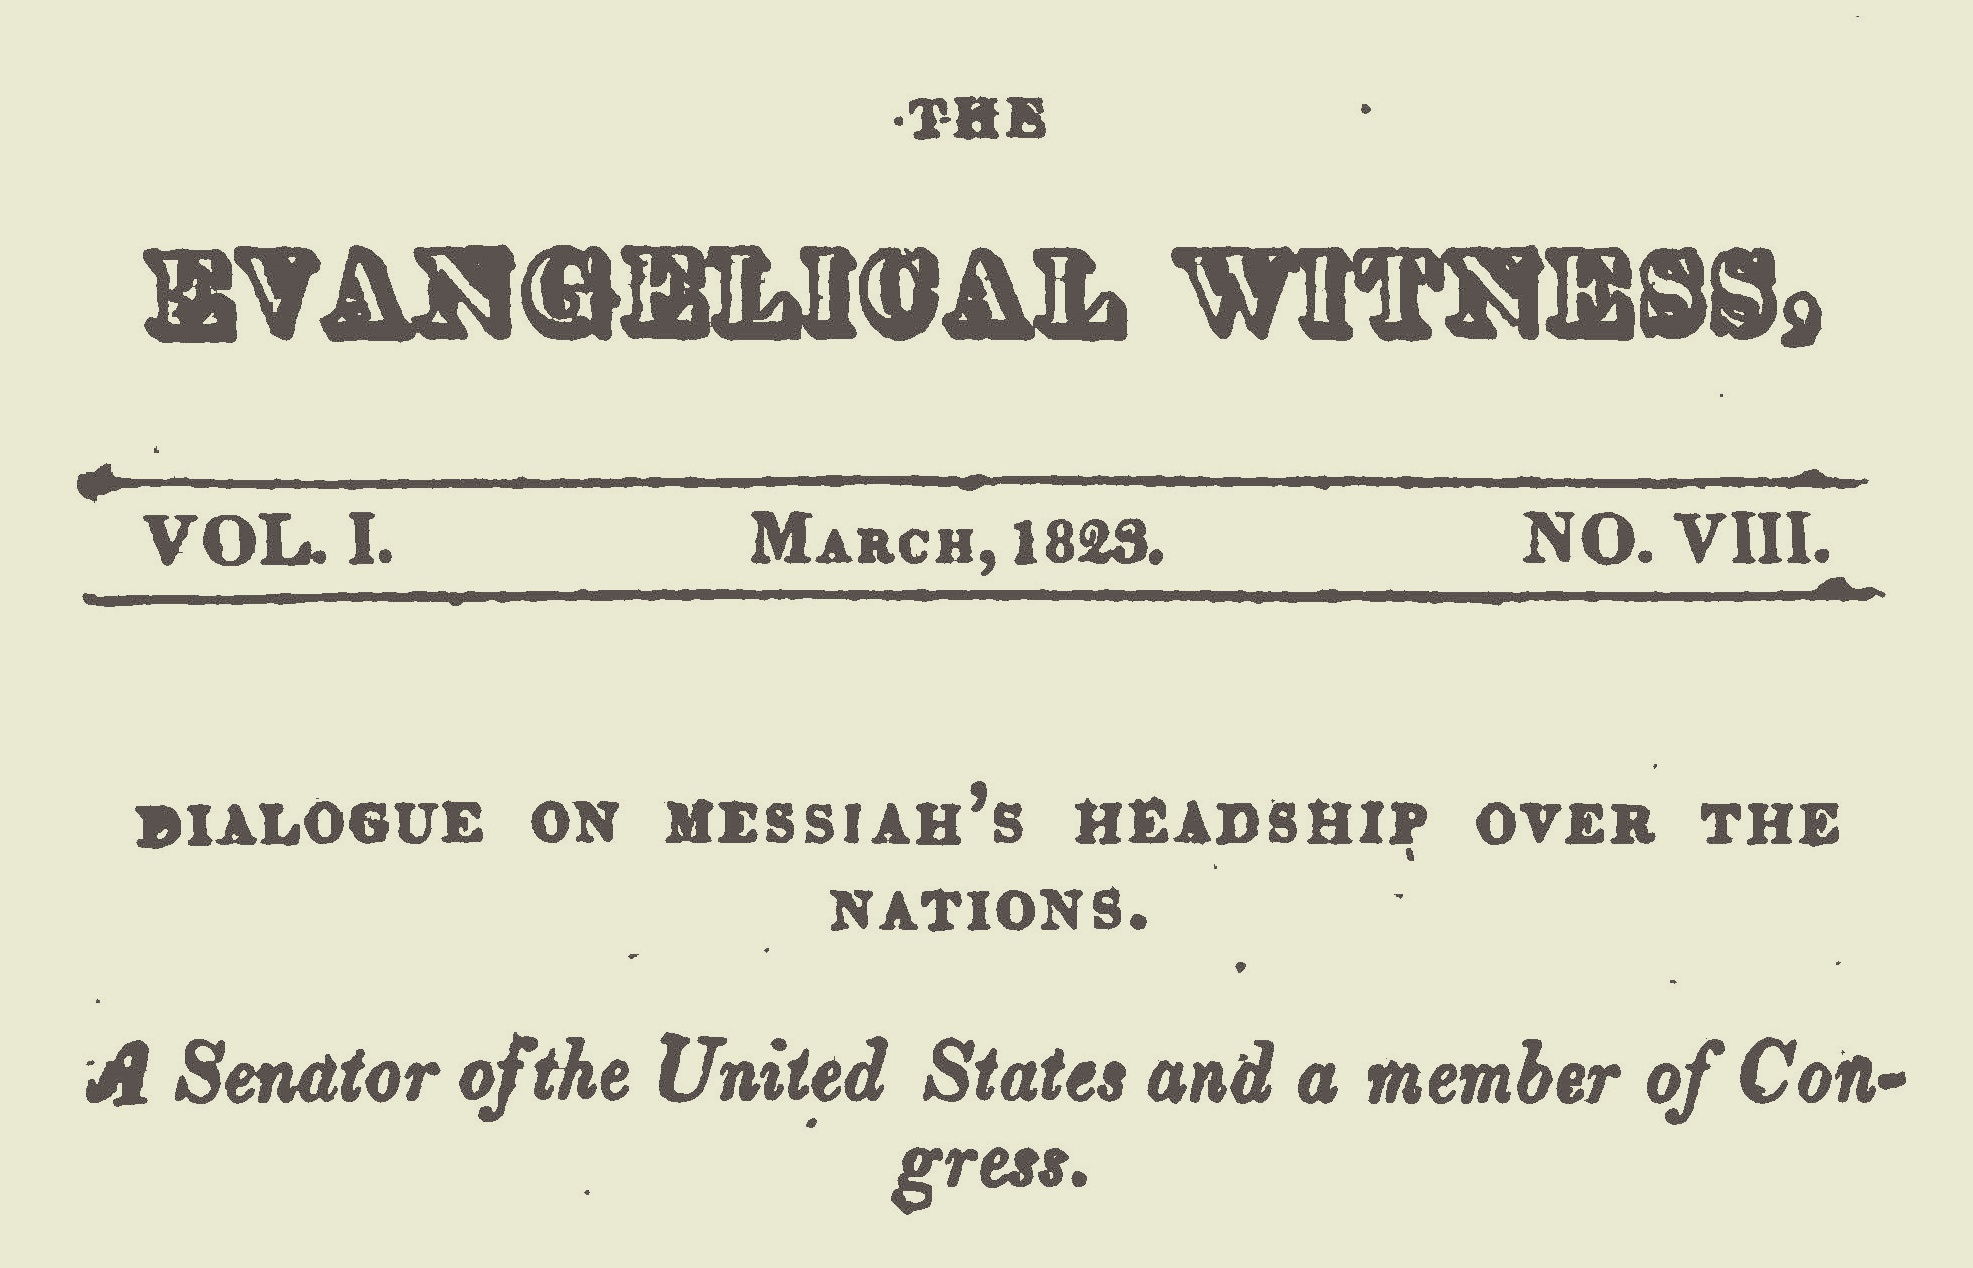 Willson, James Renwick, Dialogue on Messiah's Headship Title Page.jpg